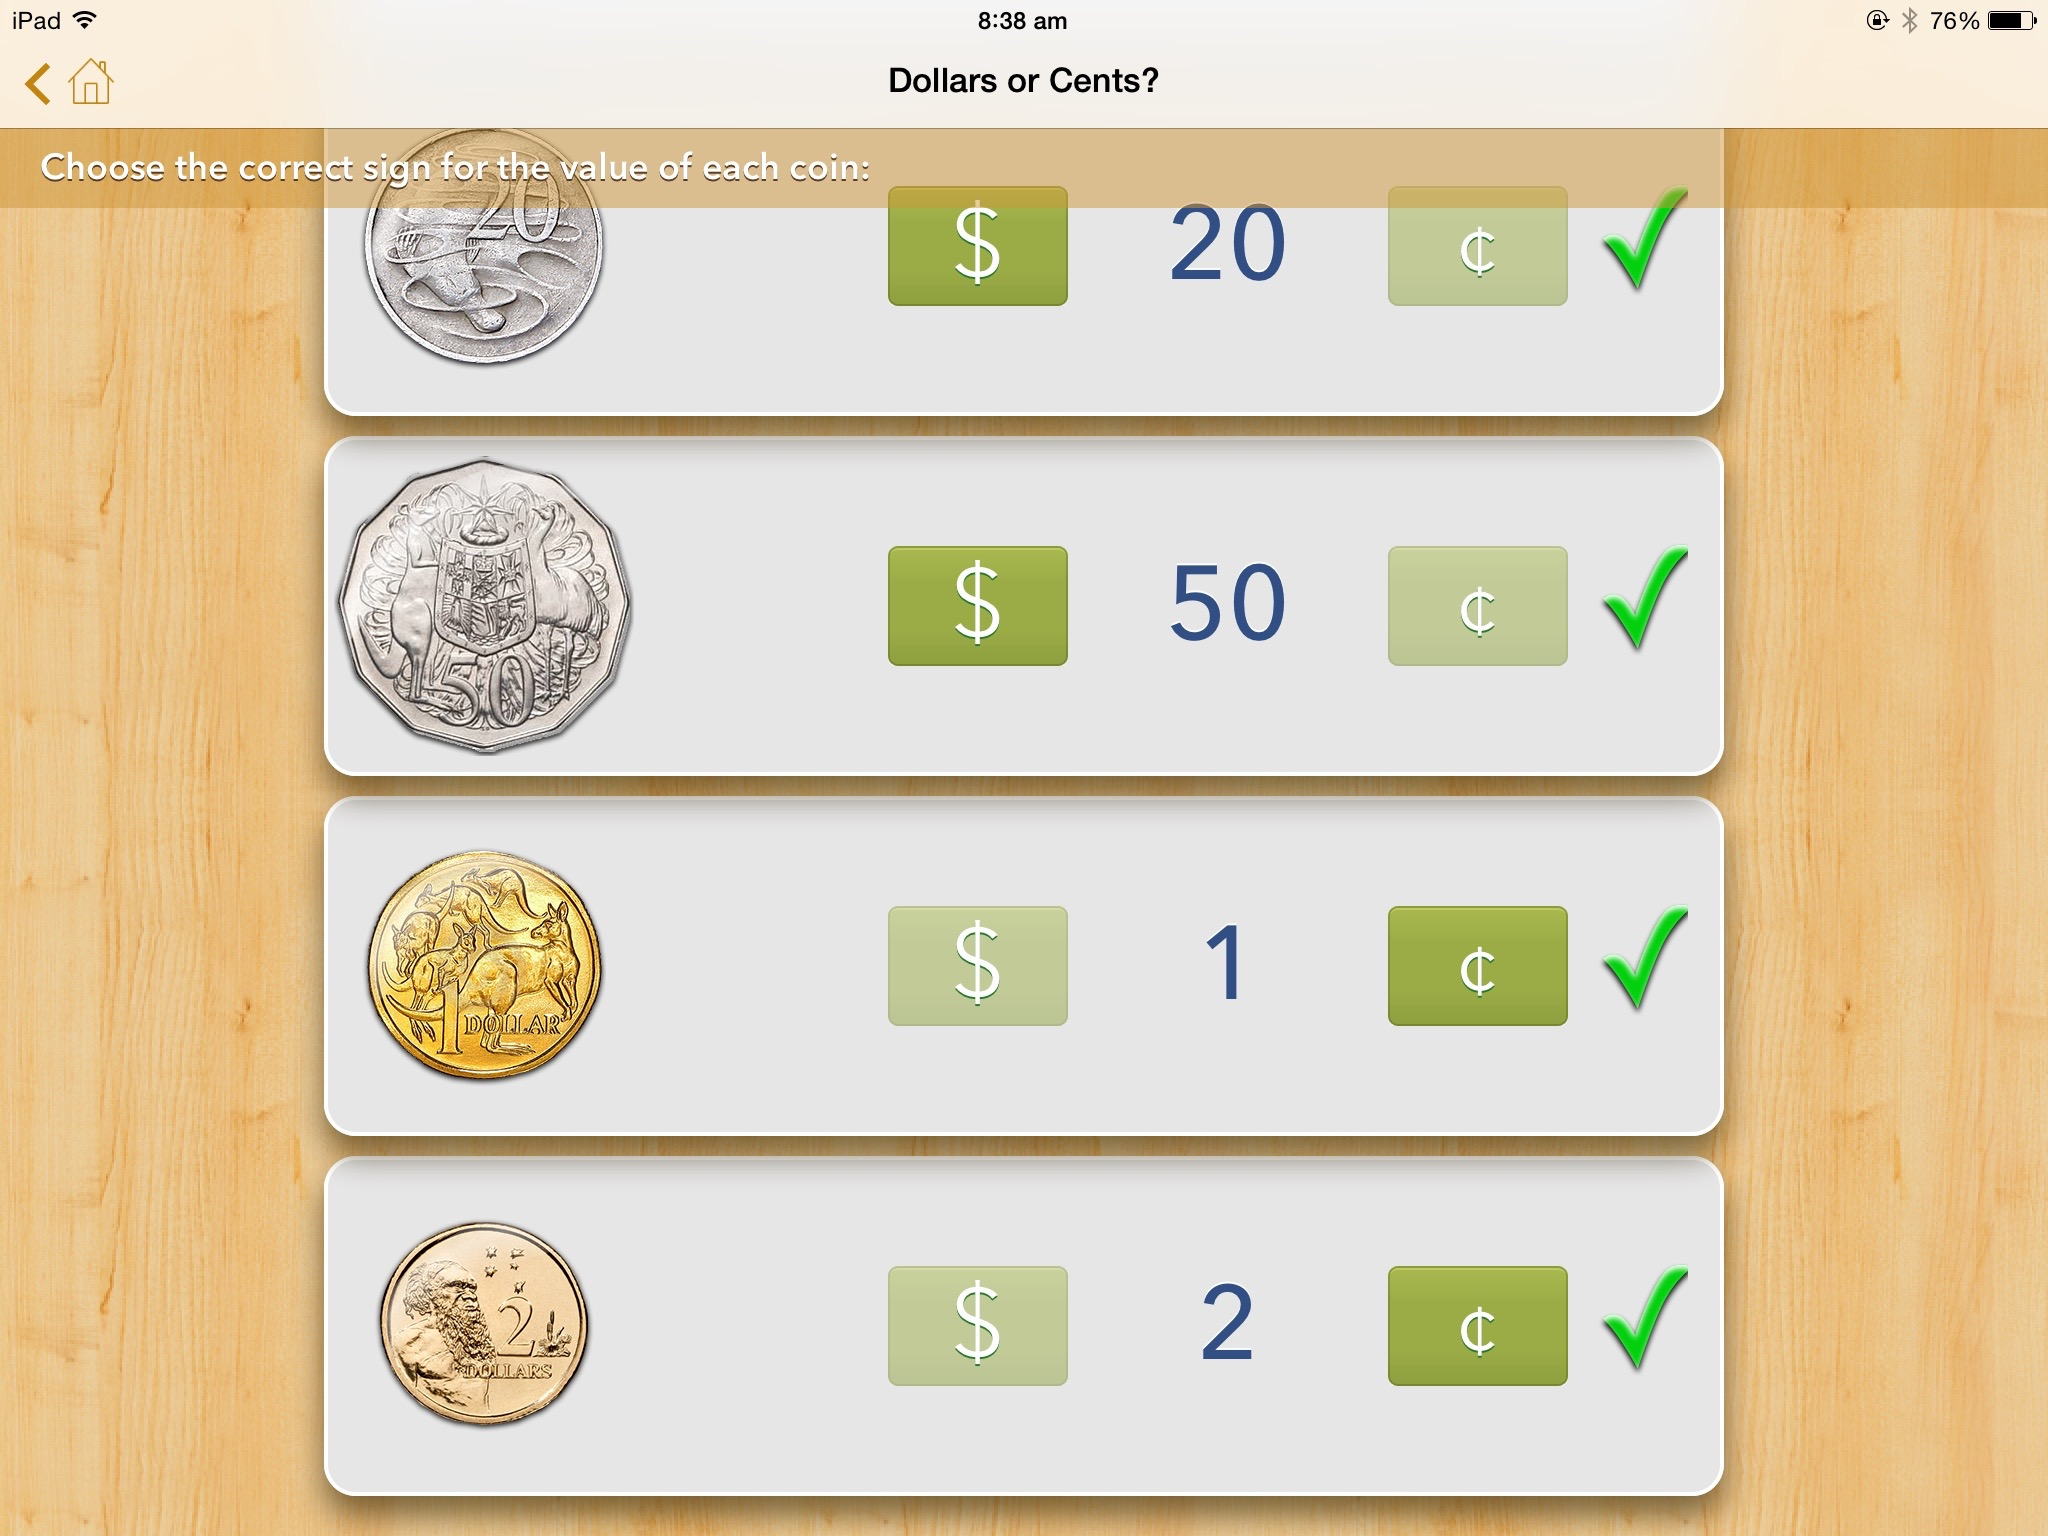 On sarahs ipad a mums guide to apps ebooks and other mobile media dollars or cents biocorpaavc Gallery